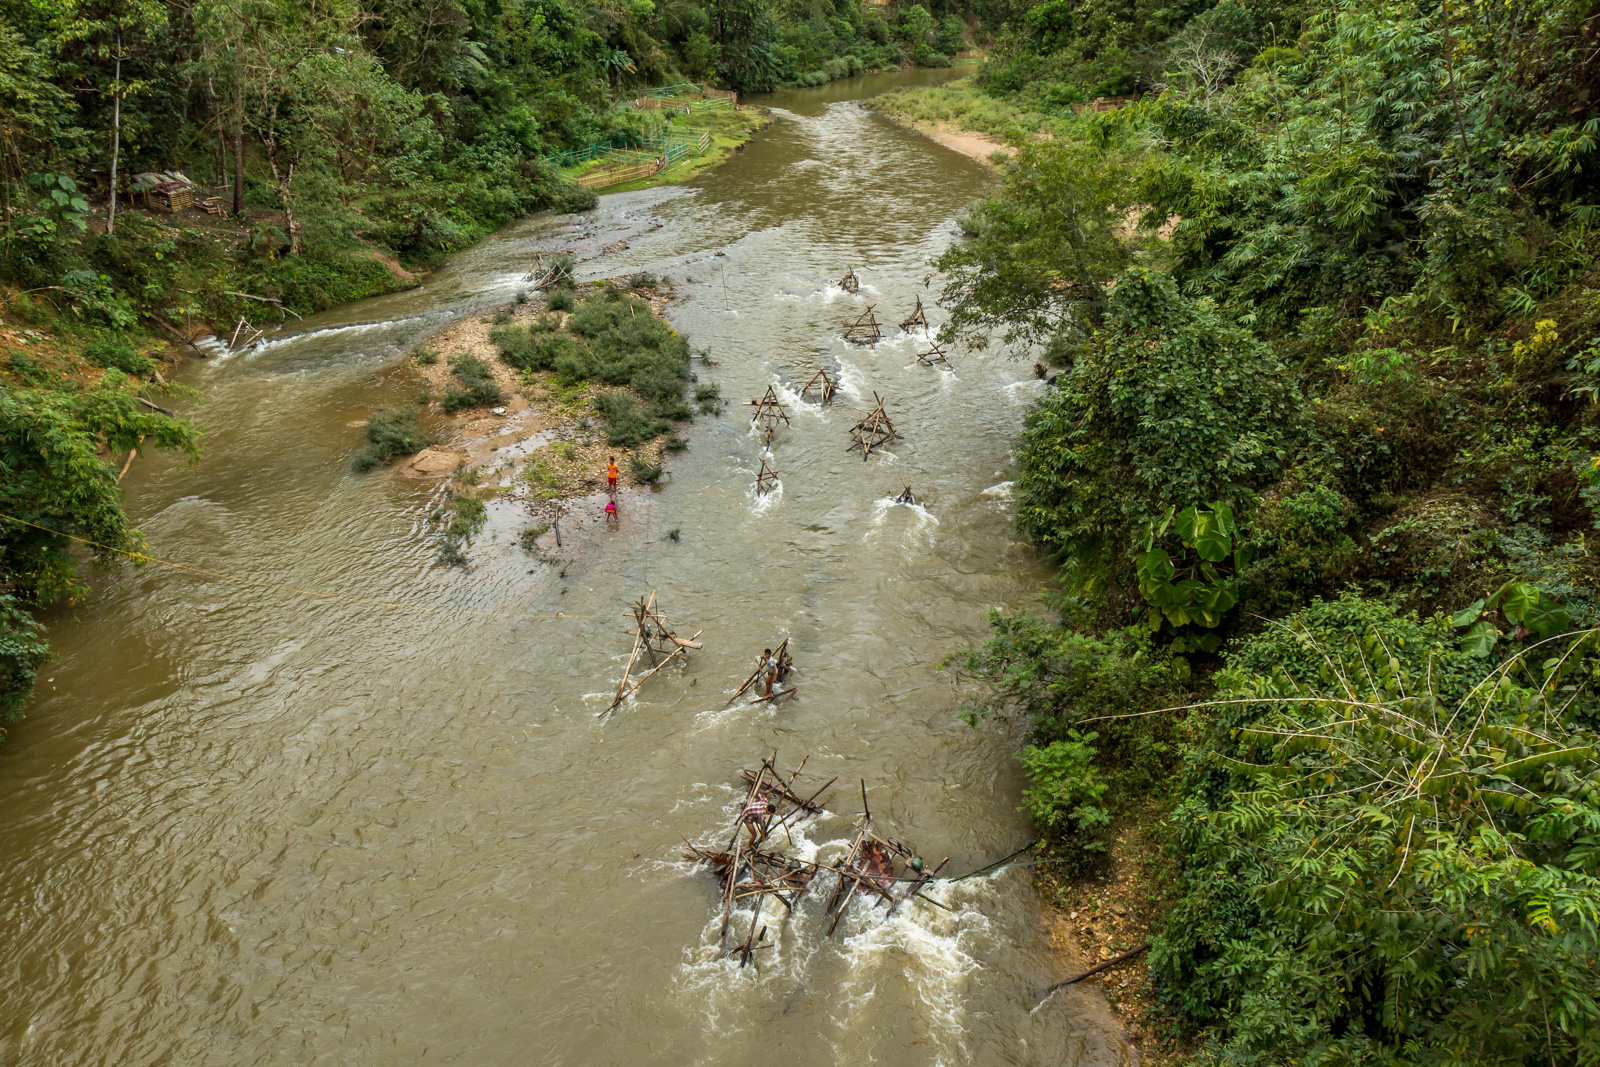 Villagers had makeshift turbines set up in the river.